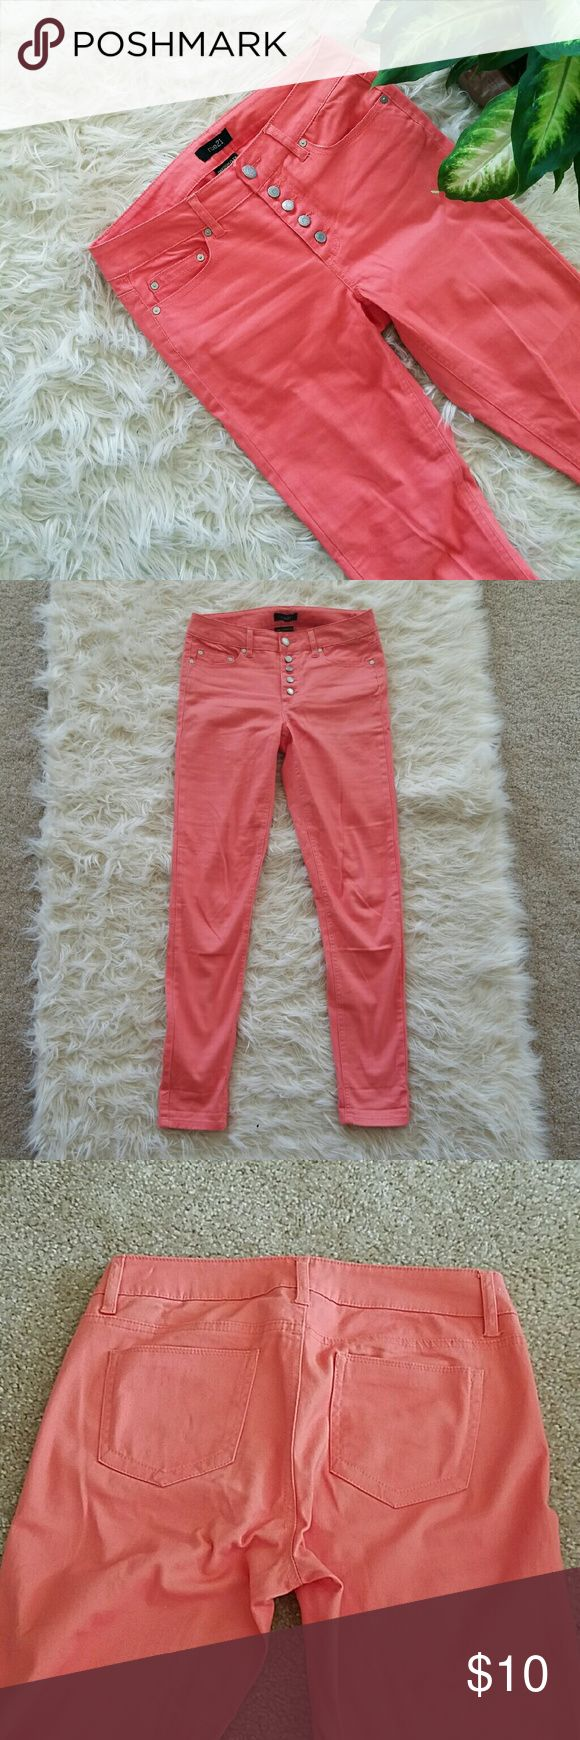 "High waist jeggins Forever 21, Skinny, coral, high waist jeggins. Worn only once. 98% cotton and 2% spandex  Measures: Waist 15.5"" flat Hips 18"" flat  Calf 6.5"" flat Ankle 5"" flat Length 40"" Forever 21 Pants Skinny"